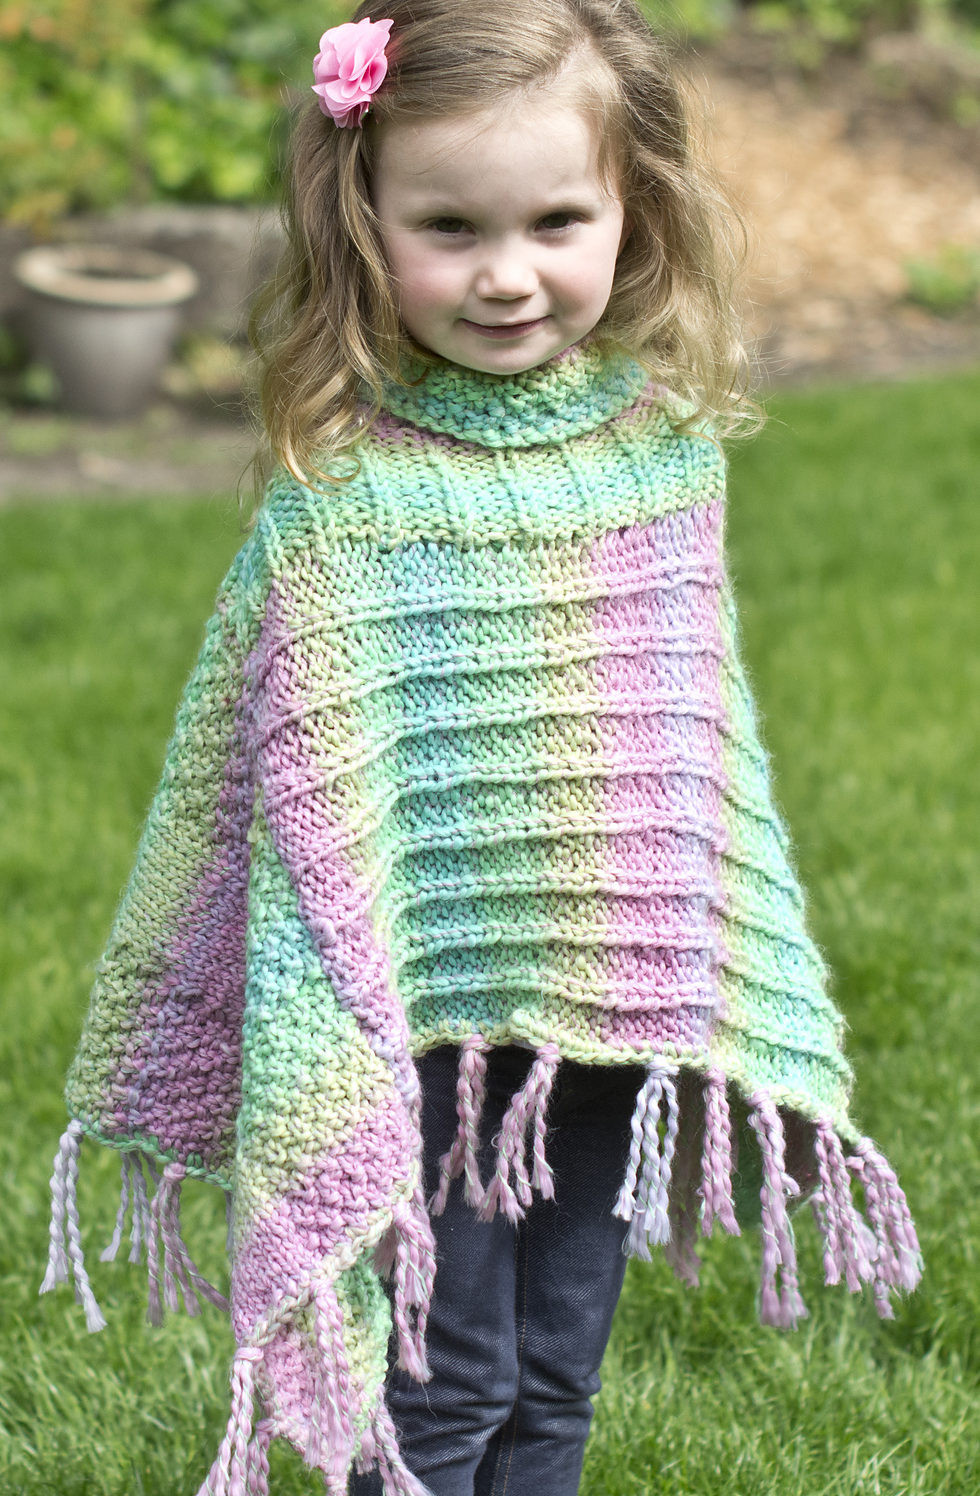 Beautiful Ponchos for Babies and Children Knitting Patterns Free Poncho Knitting Patterns Of Incredible 43 Models Free Poncho Knitting Patterns